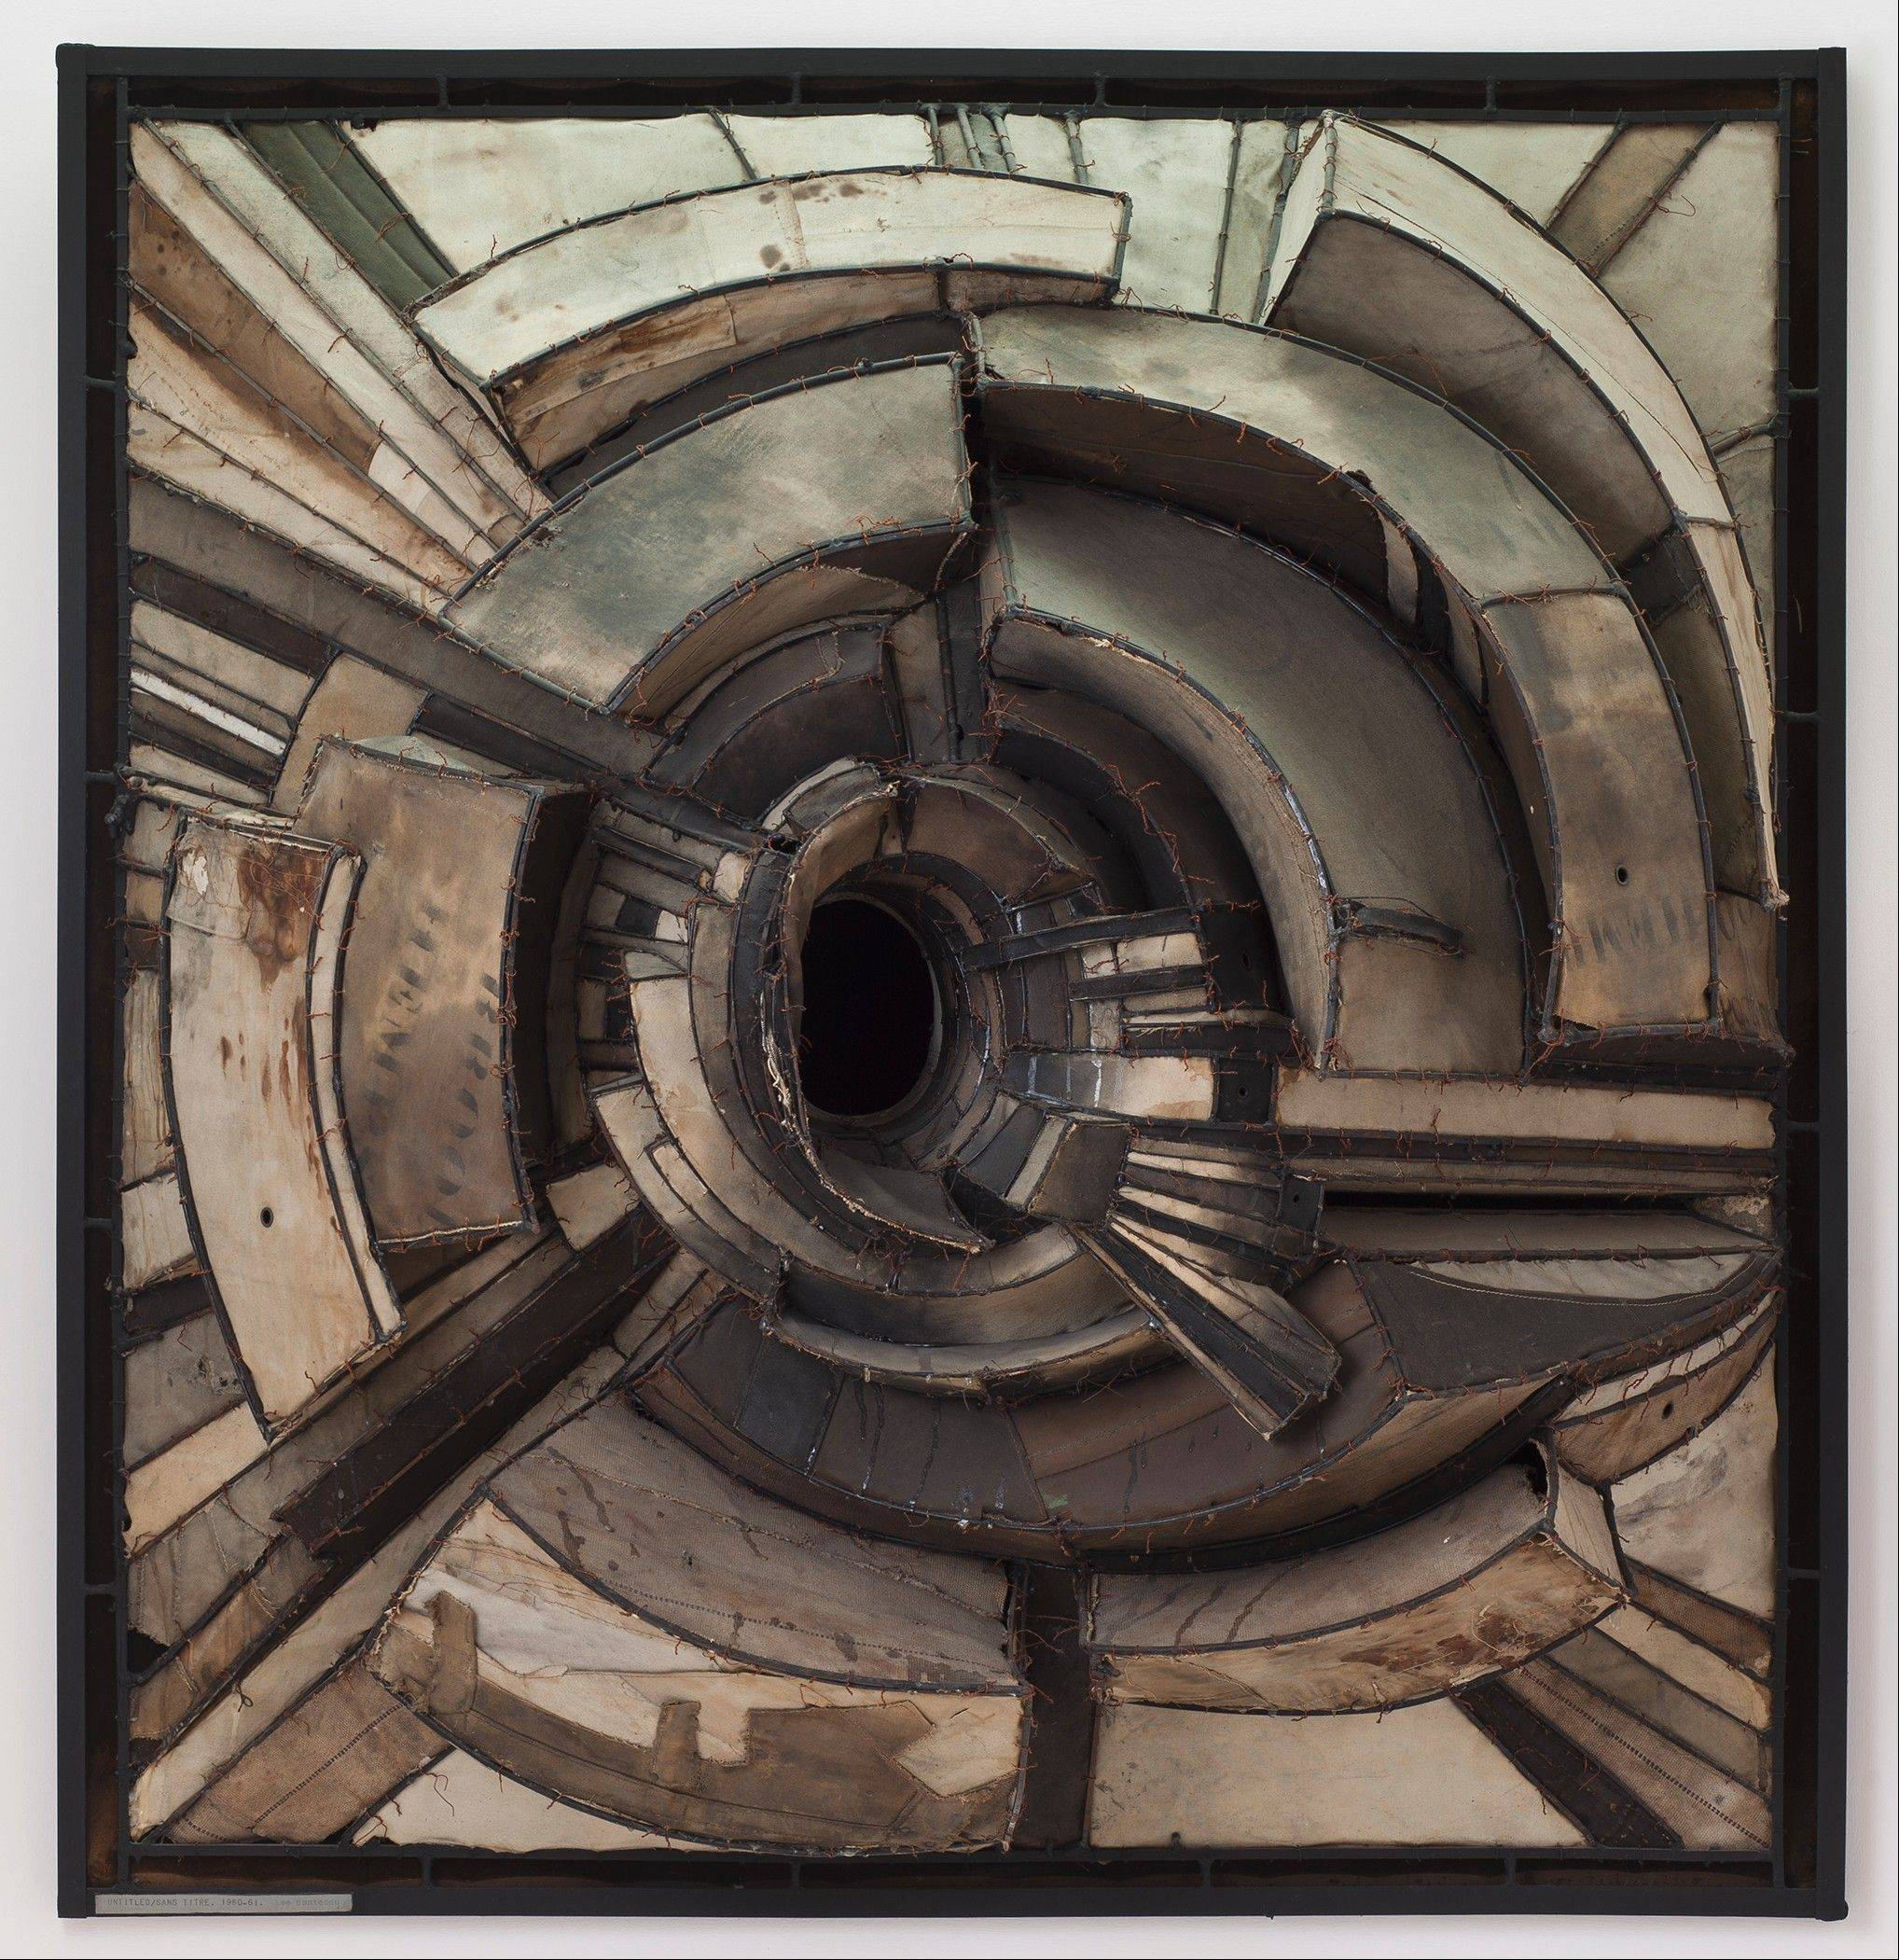 Lee Bontecou's 1962 Untitled work is on loan as part of the Museum of Contemporary Art's exhibit Destroy the Picture: Painting the Void, 1949-1962.